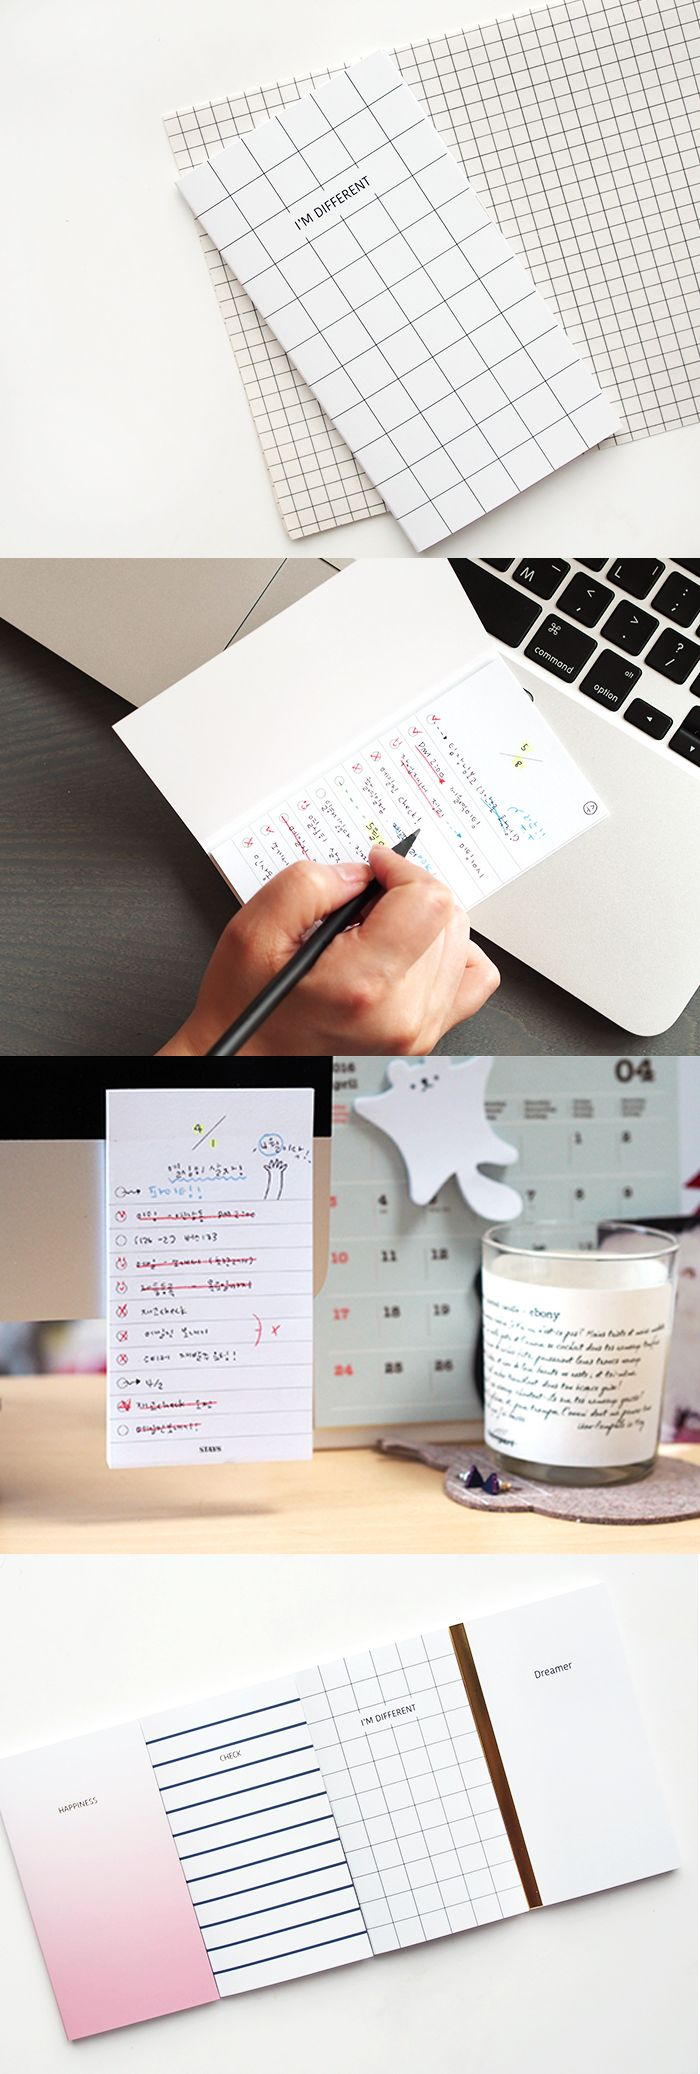 A very cute and very portable sticky note set. Now you can write and keep track of all your checklists and to dos wherever you are!